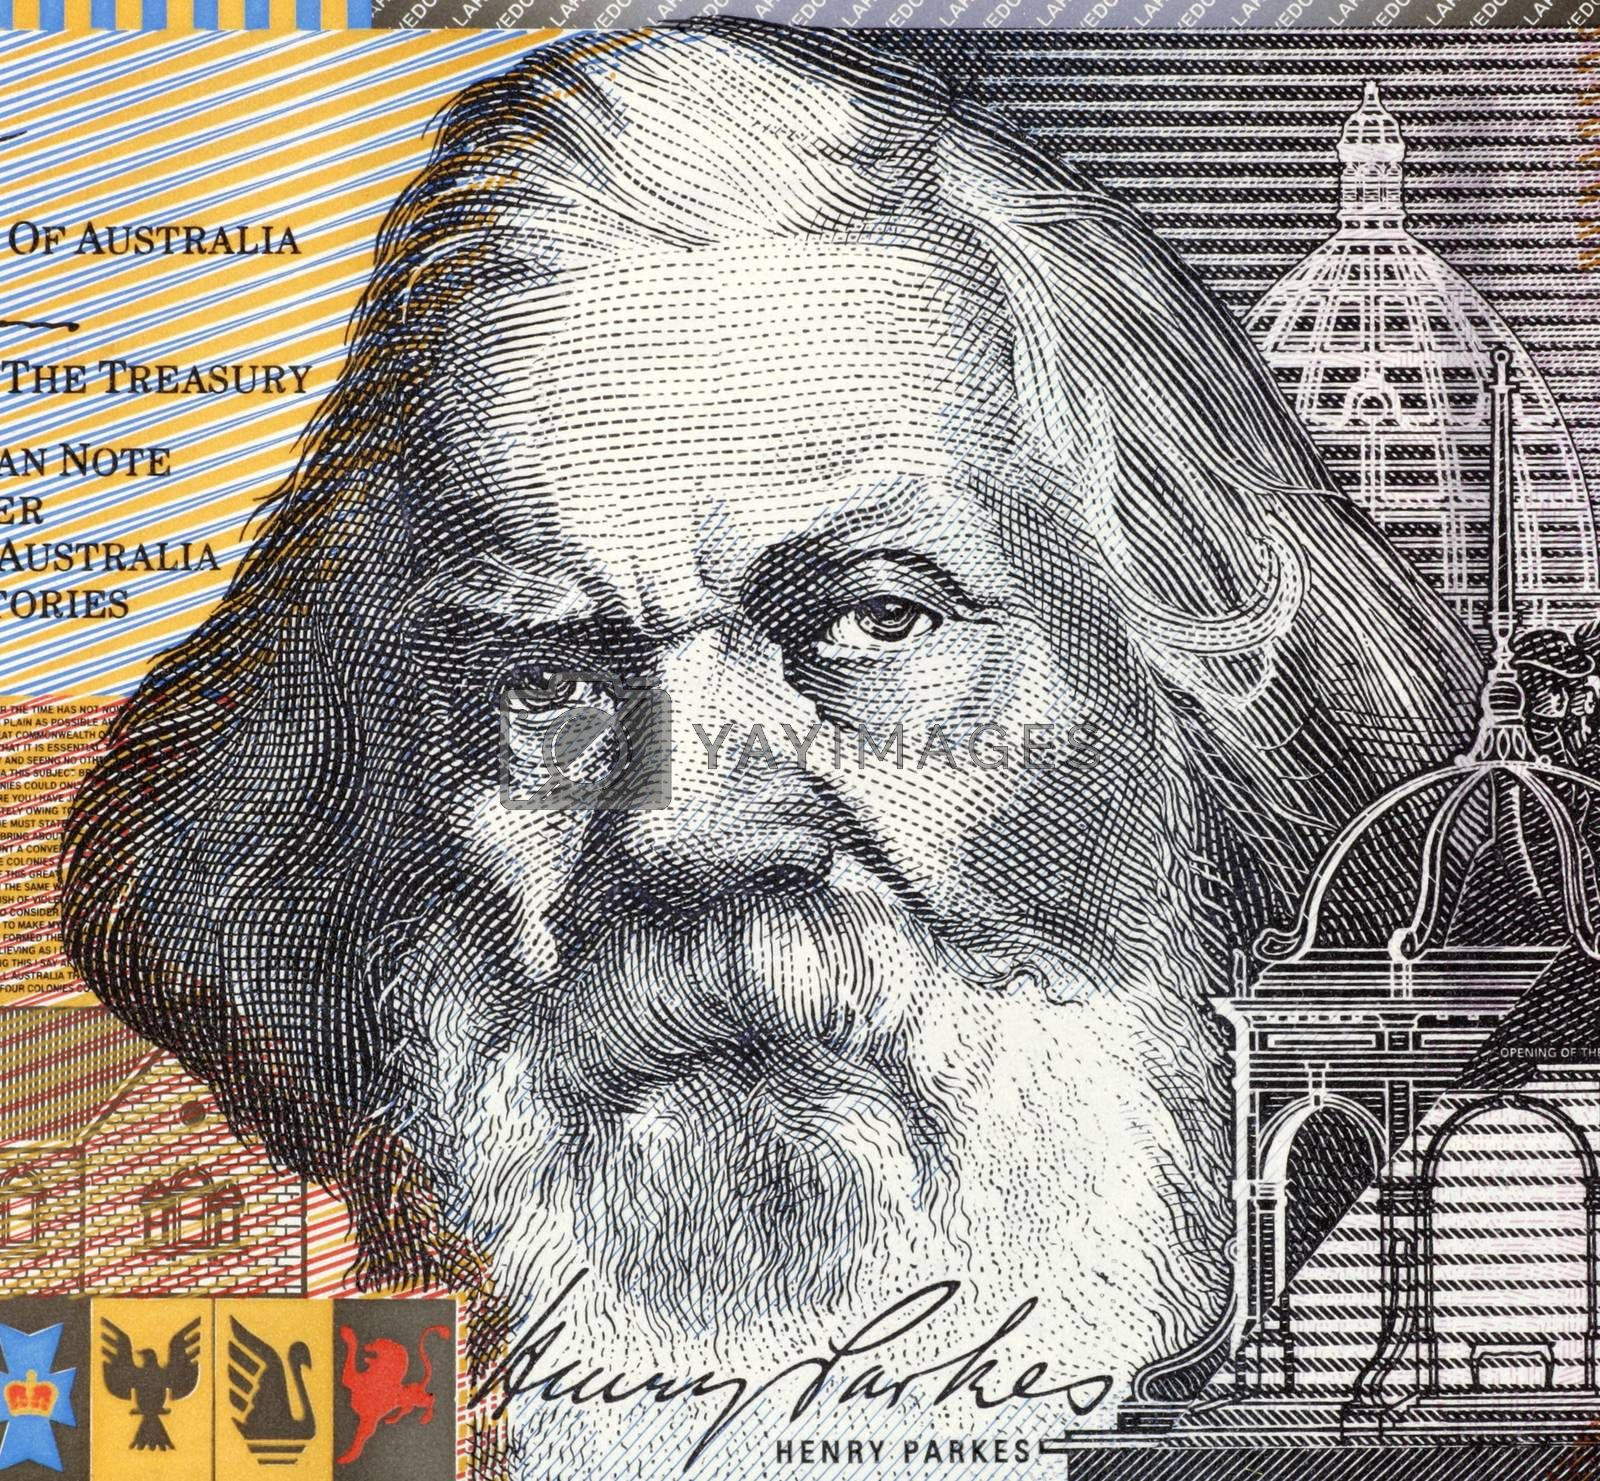 Henry Parkes (1815-1896) on 5 Dollars 2001 banknote from Australia. The Father of the Australian Federation.